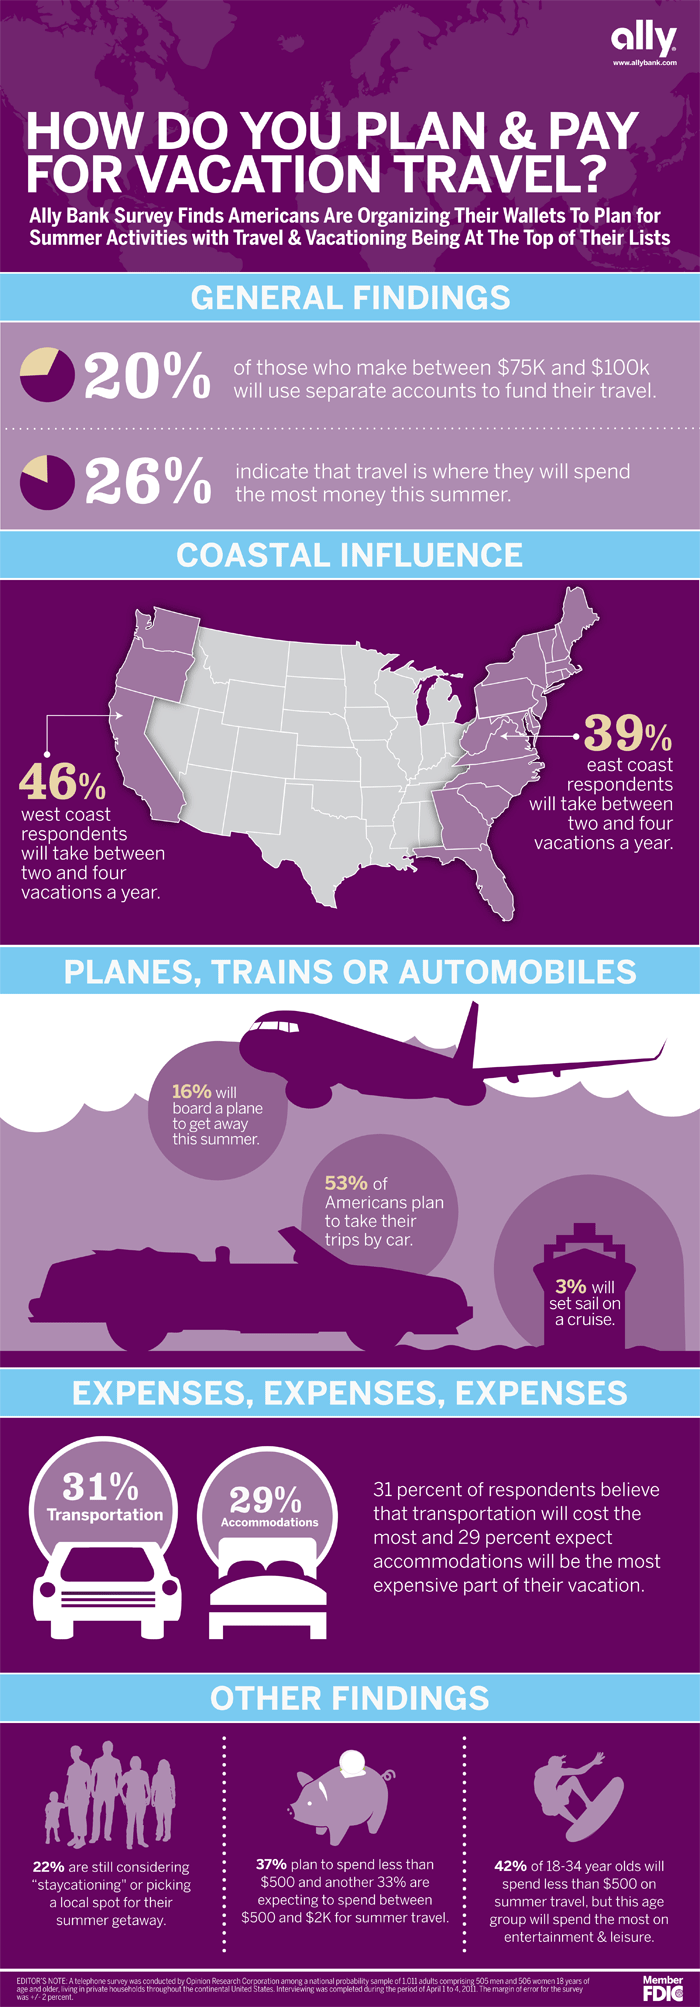 ally_travel_infographic11